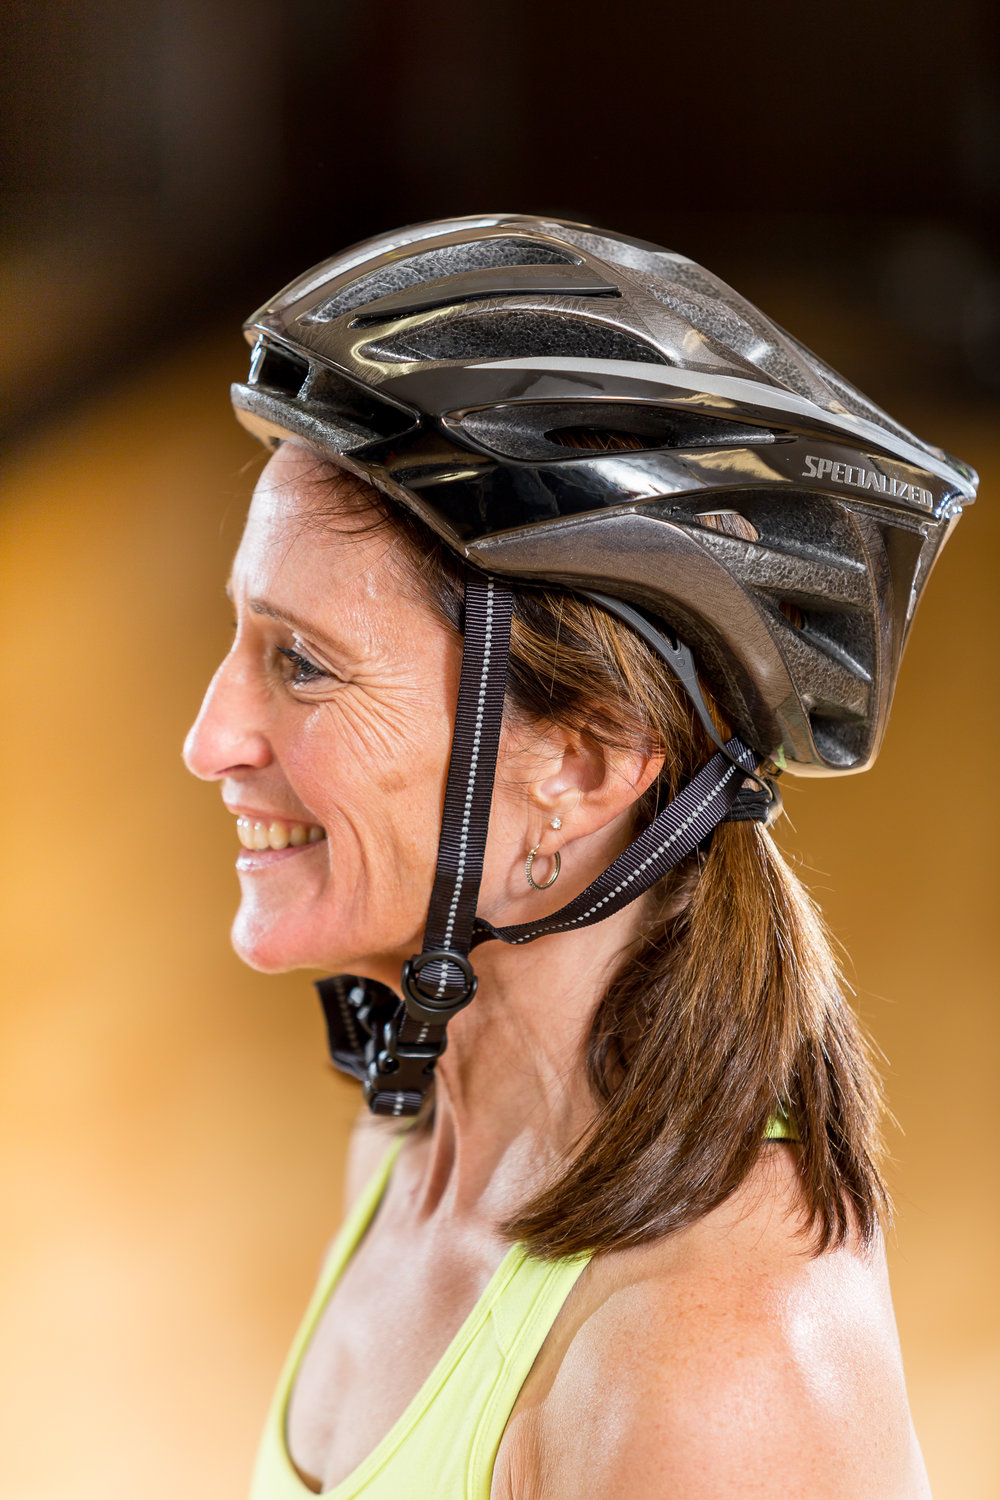 Robin demonstrates an improperly fitting helmet - it's not covering the forehead, and the straps are loose.